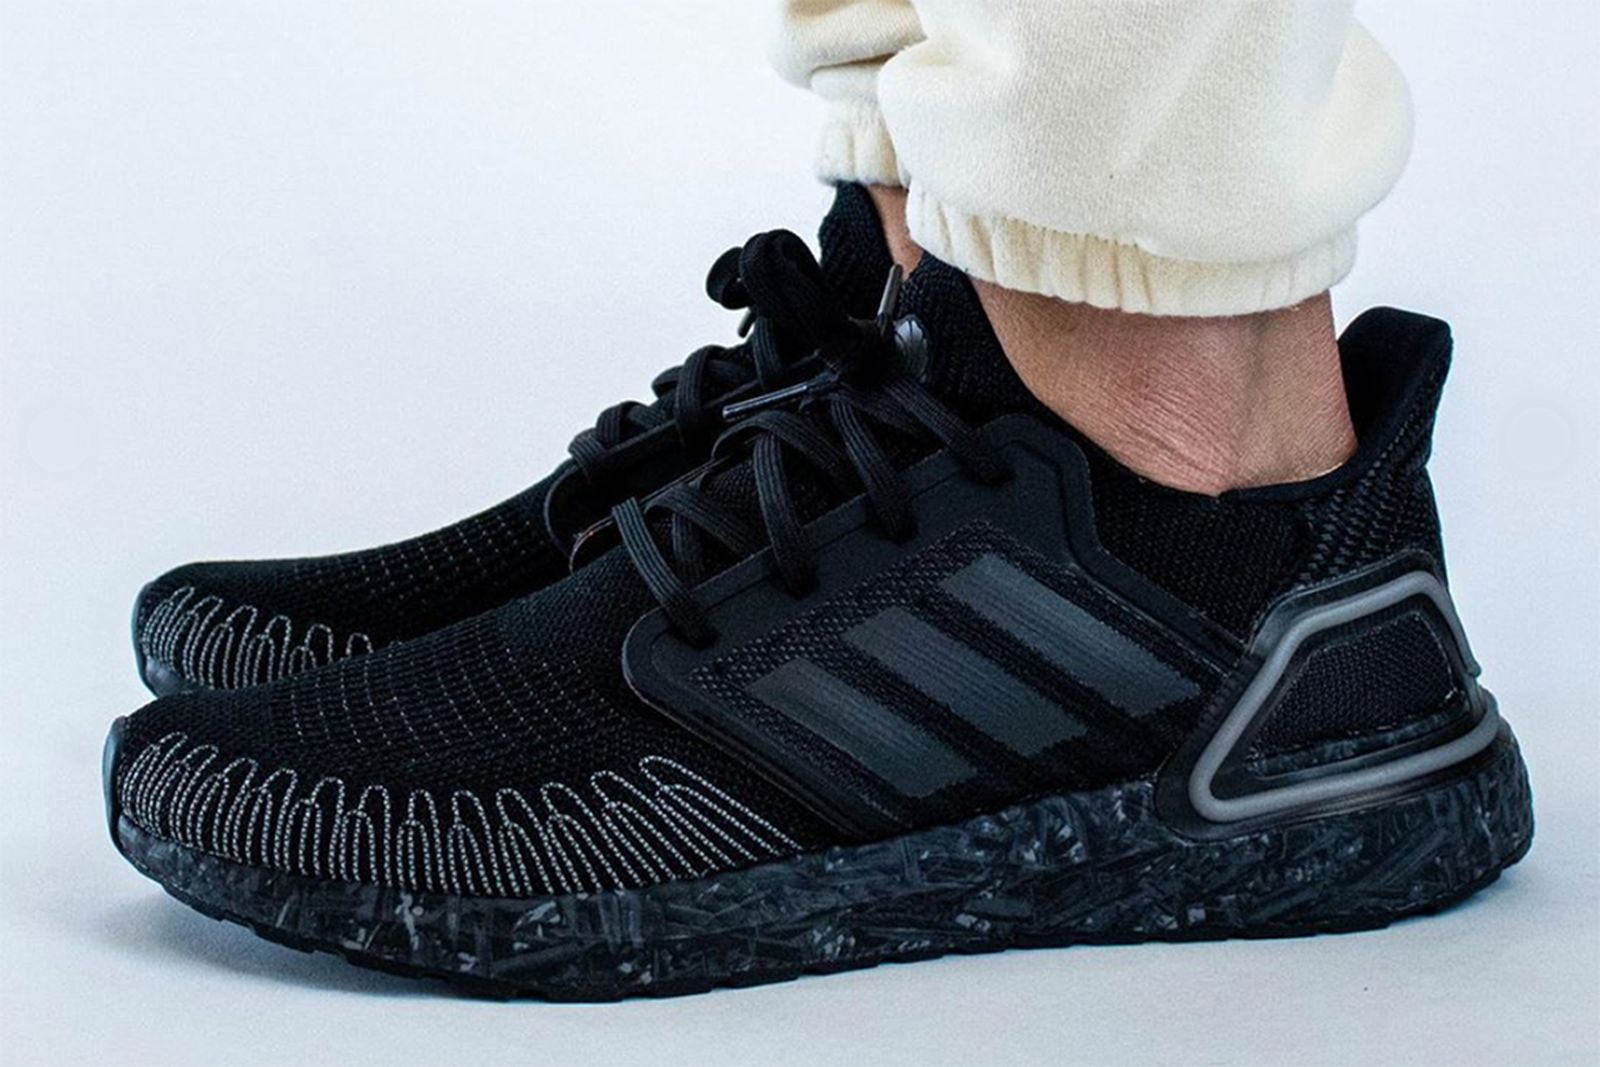 james-bond-adidas-ultra-boost-20-release-date-price-01